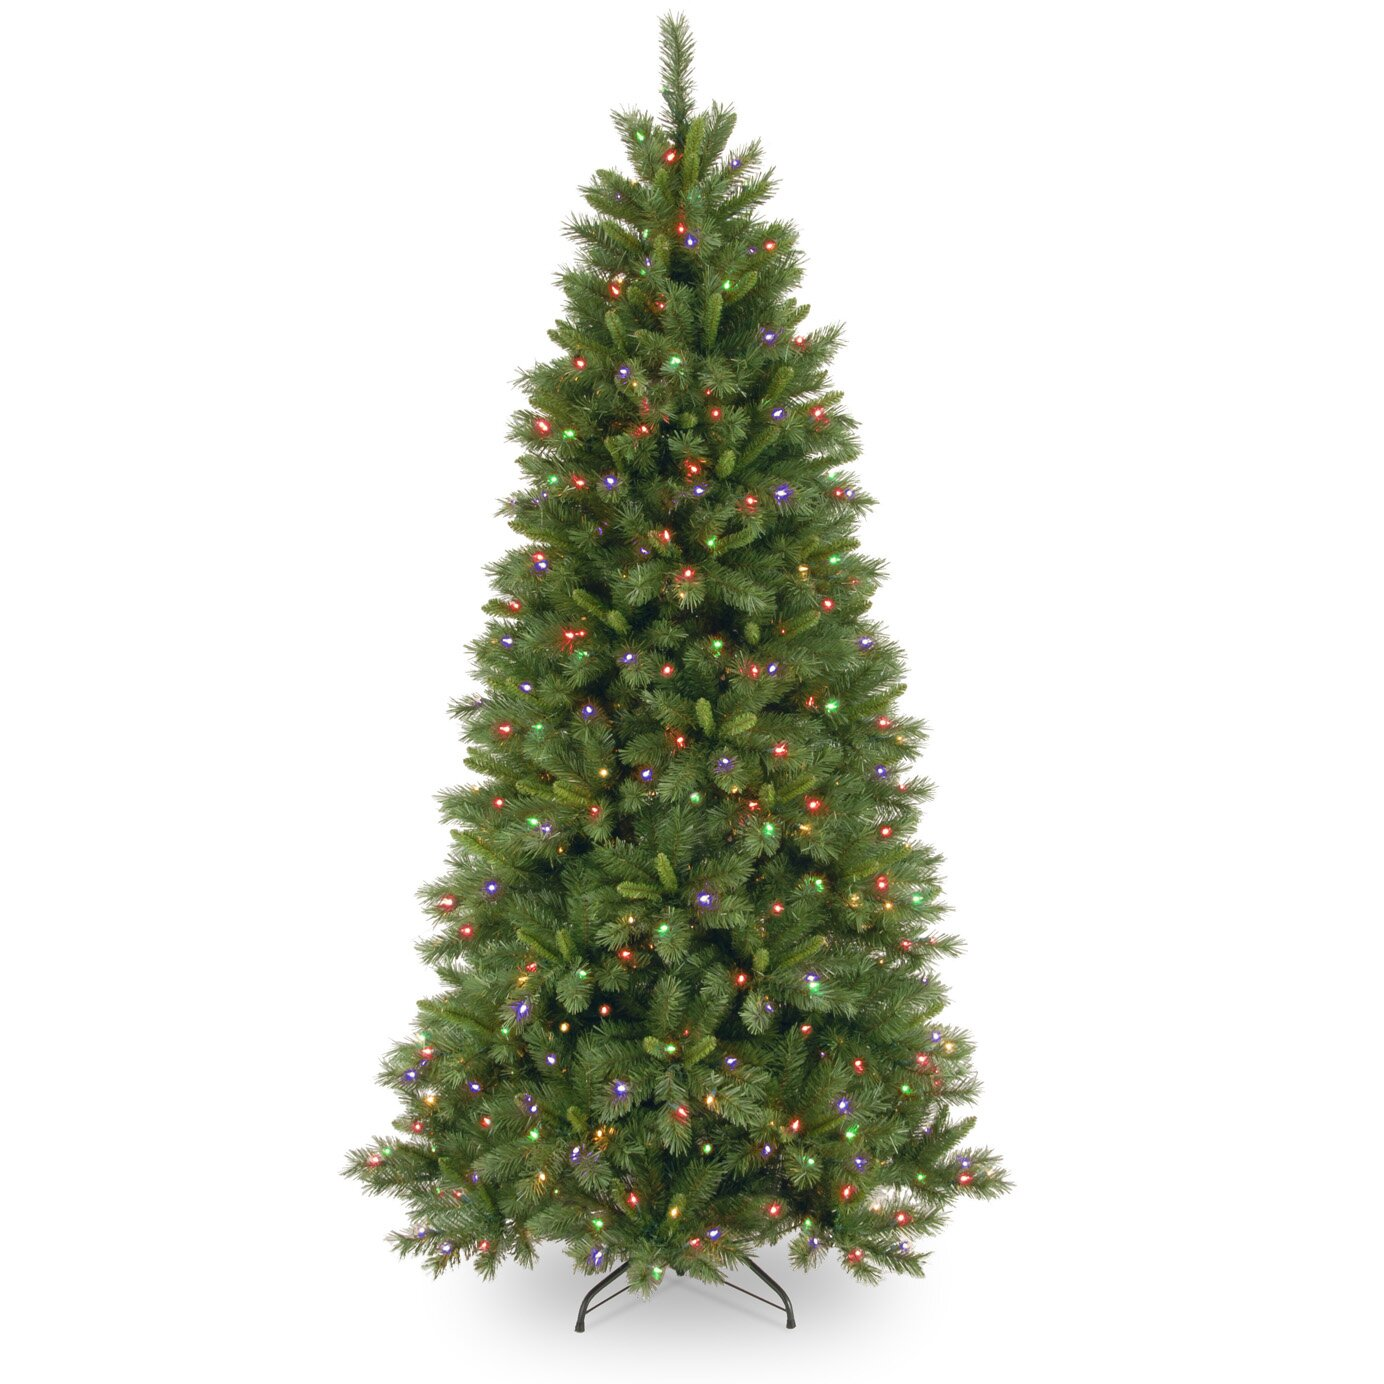 National Tree Co. Lehigh Valley Pine 7.5' Green Slim ...